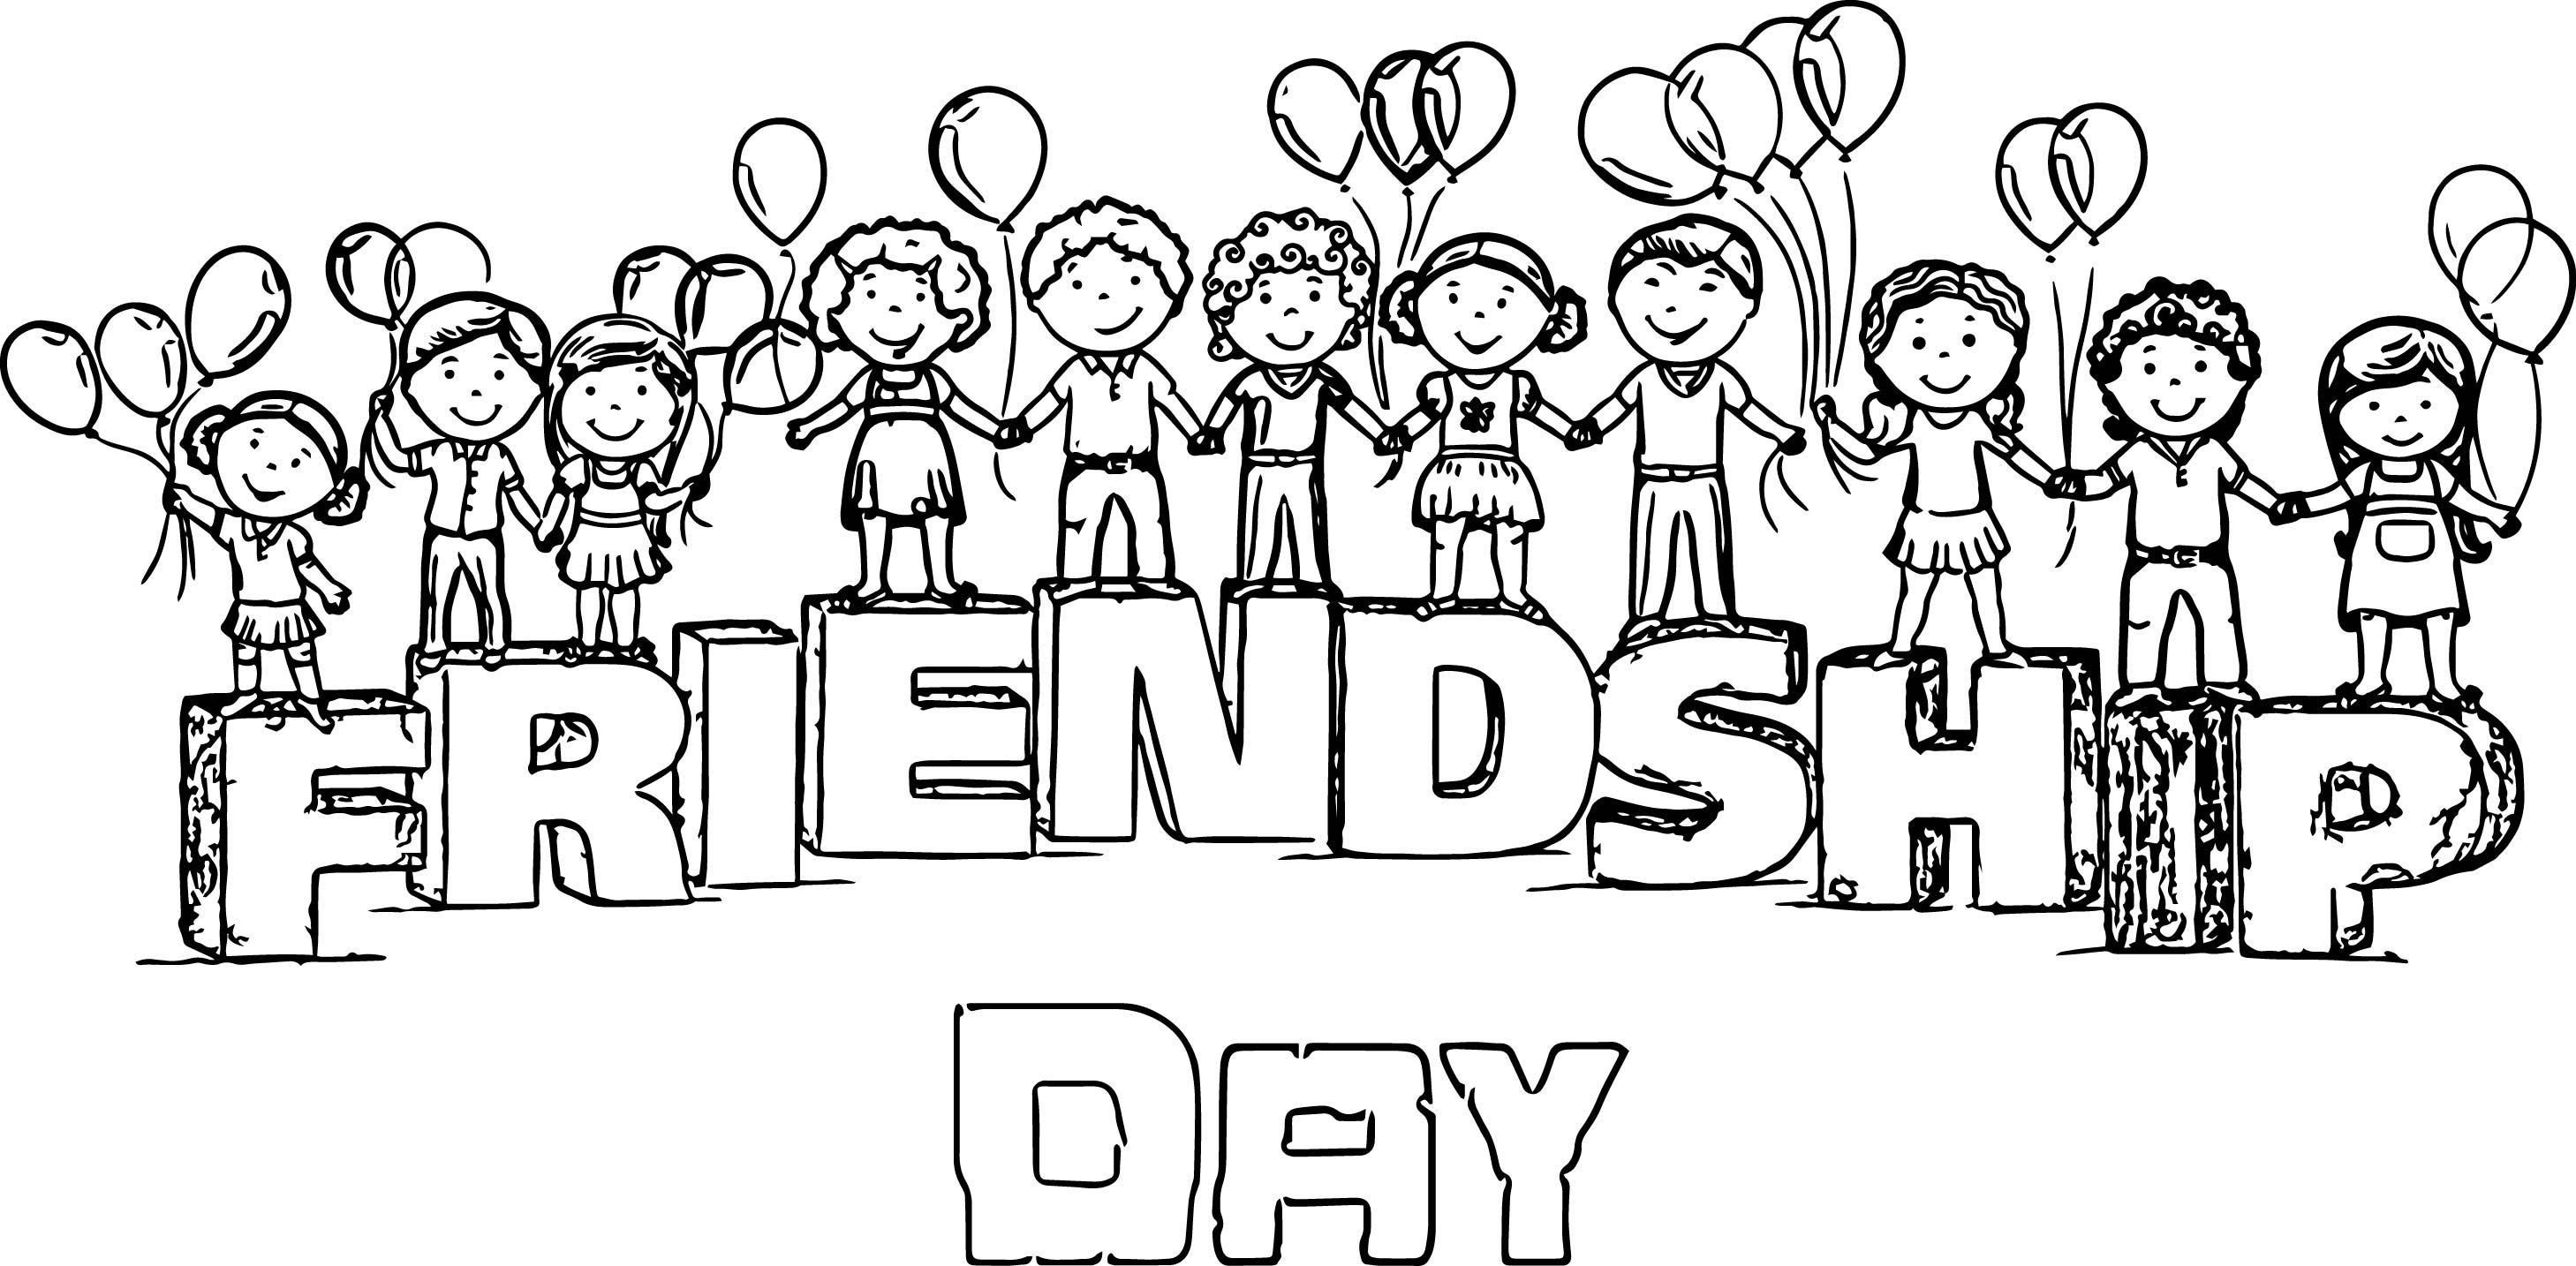 8 Coloring Page Friendship Friendship Day Images Happy Friendship Day Happy Friendship Day Images